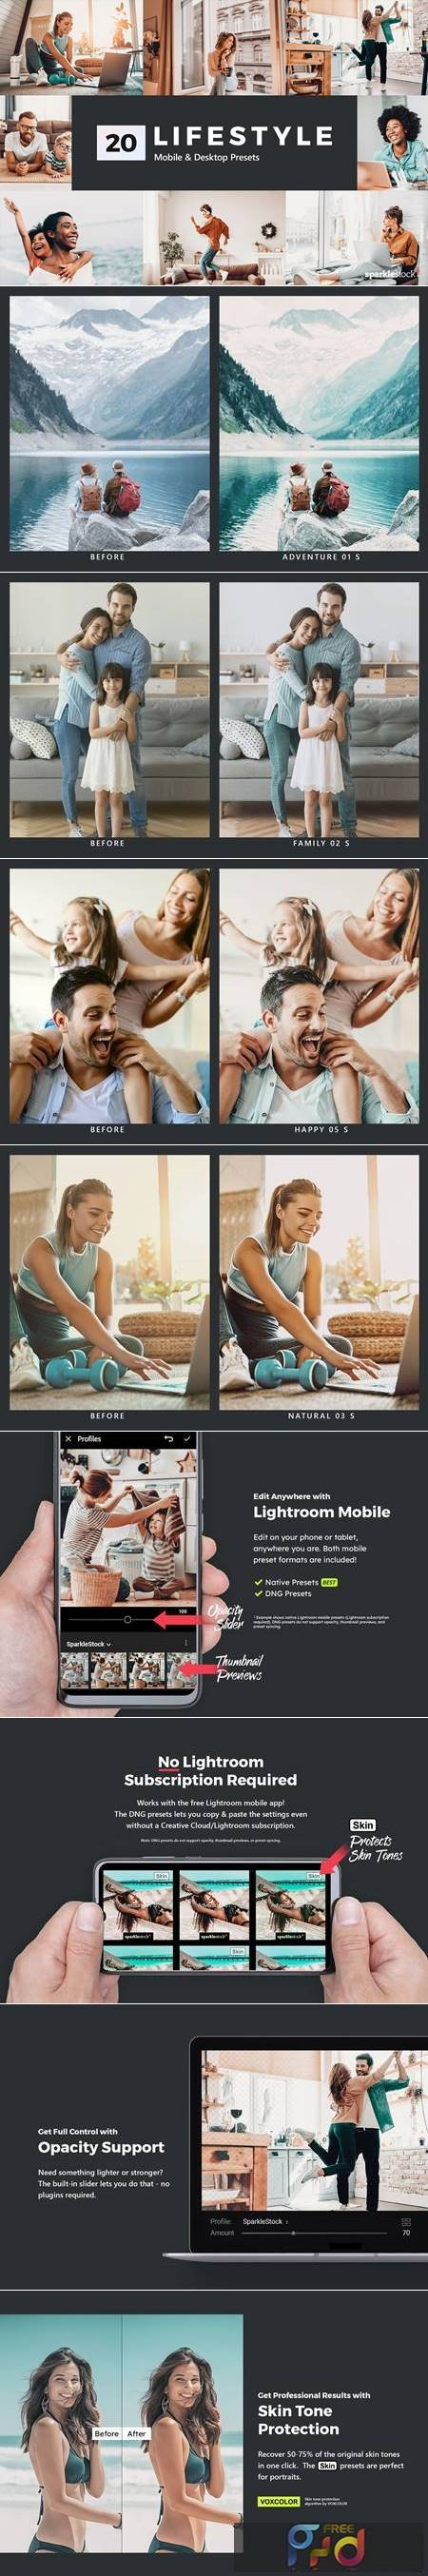 20 Lifestyle Lightroom Presets and LUTs 5200646 1